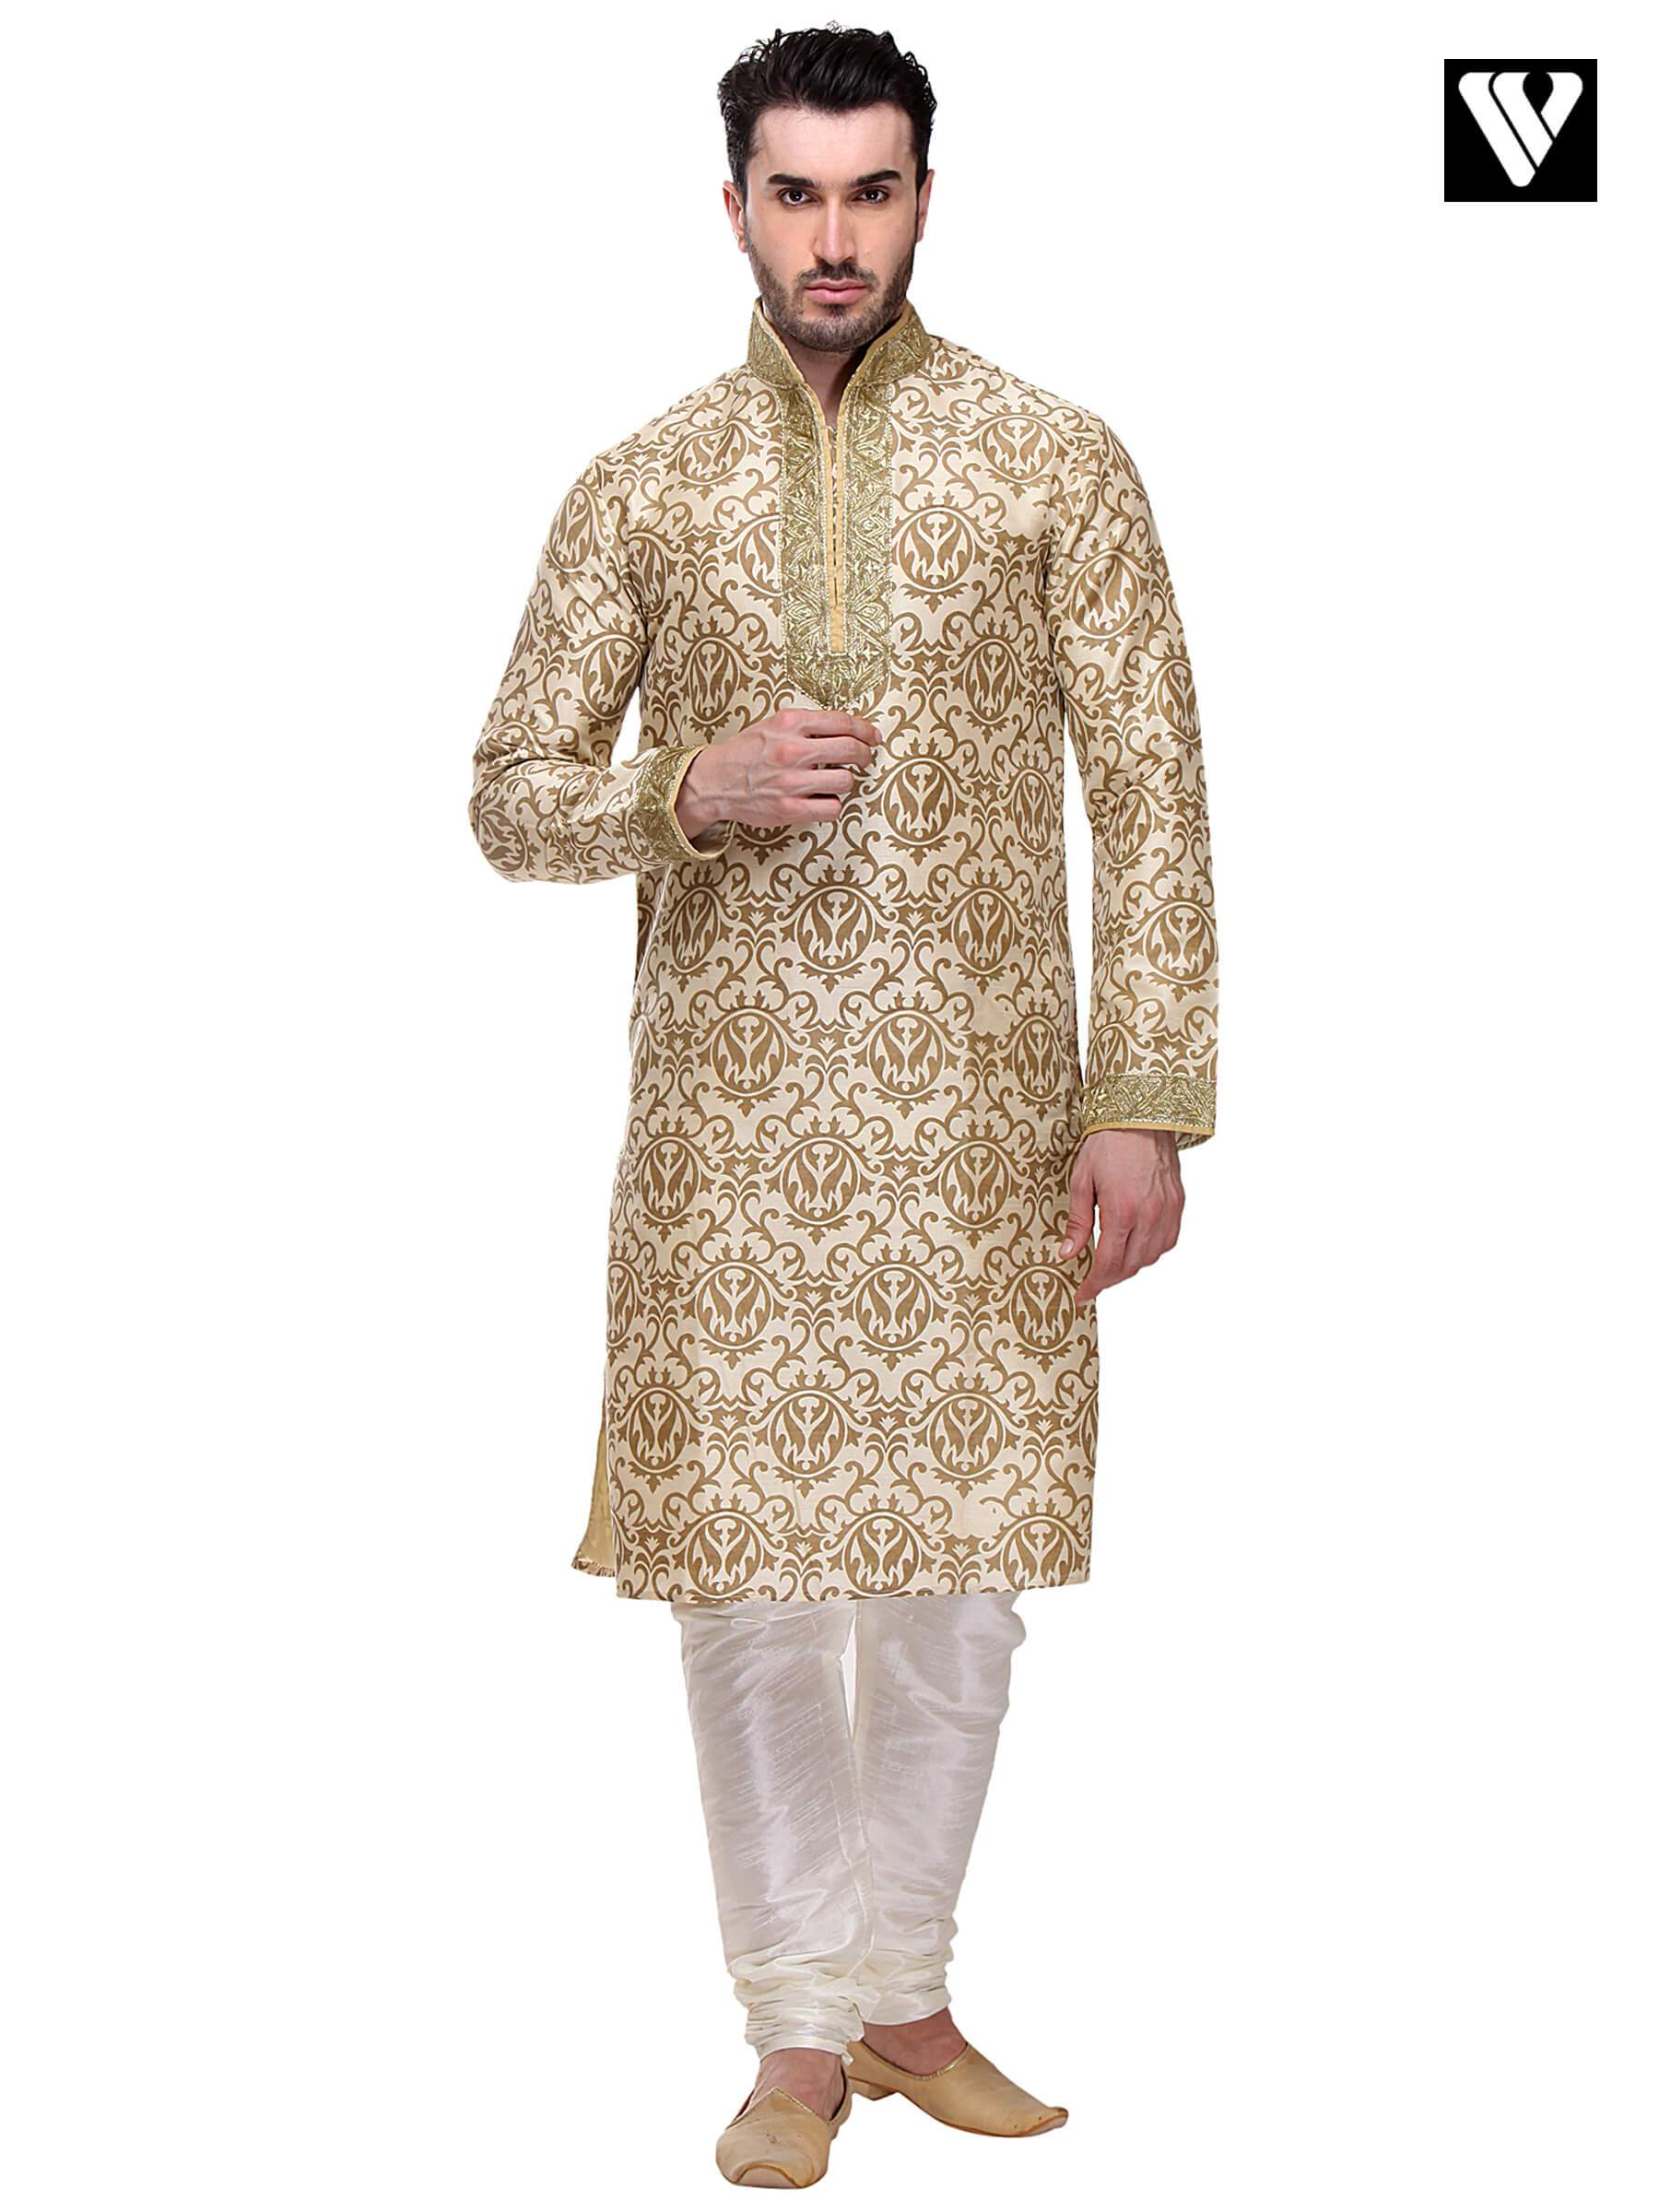 Dupion Art Silk with Gold Indian Mens Kurta Payjama